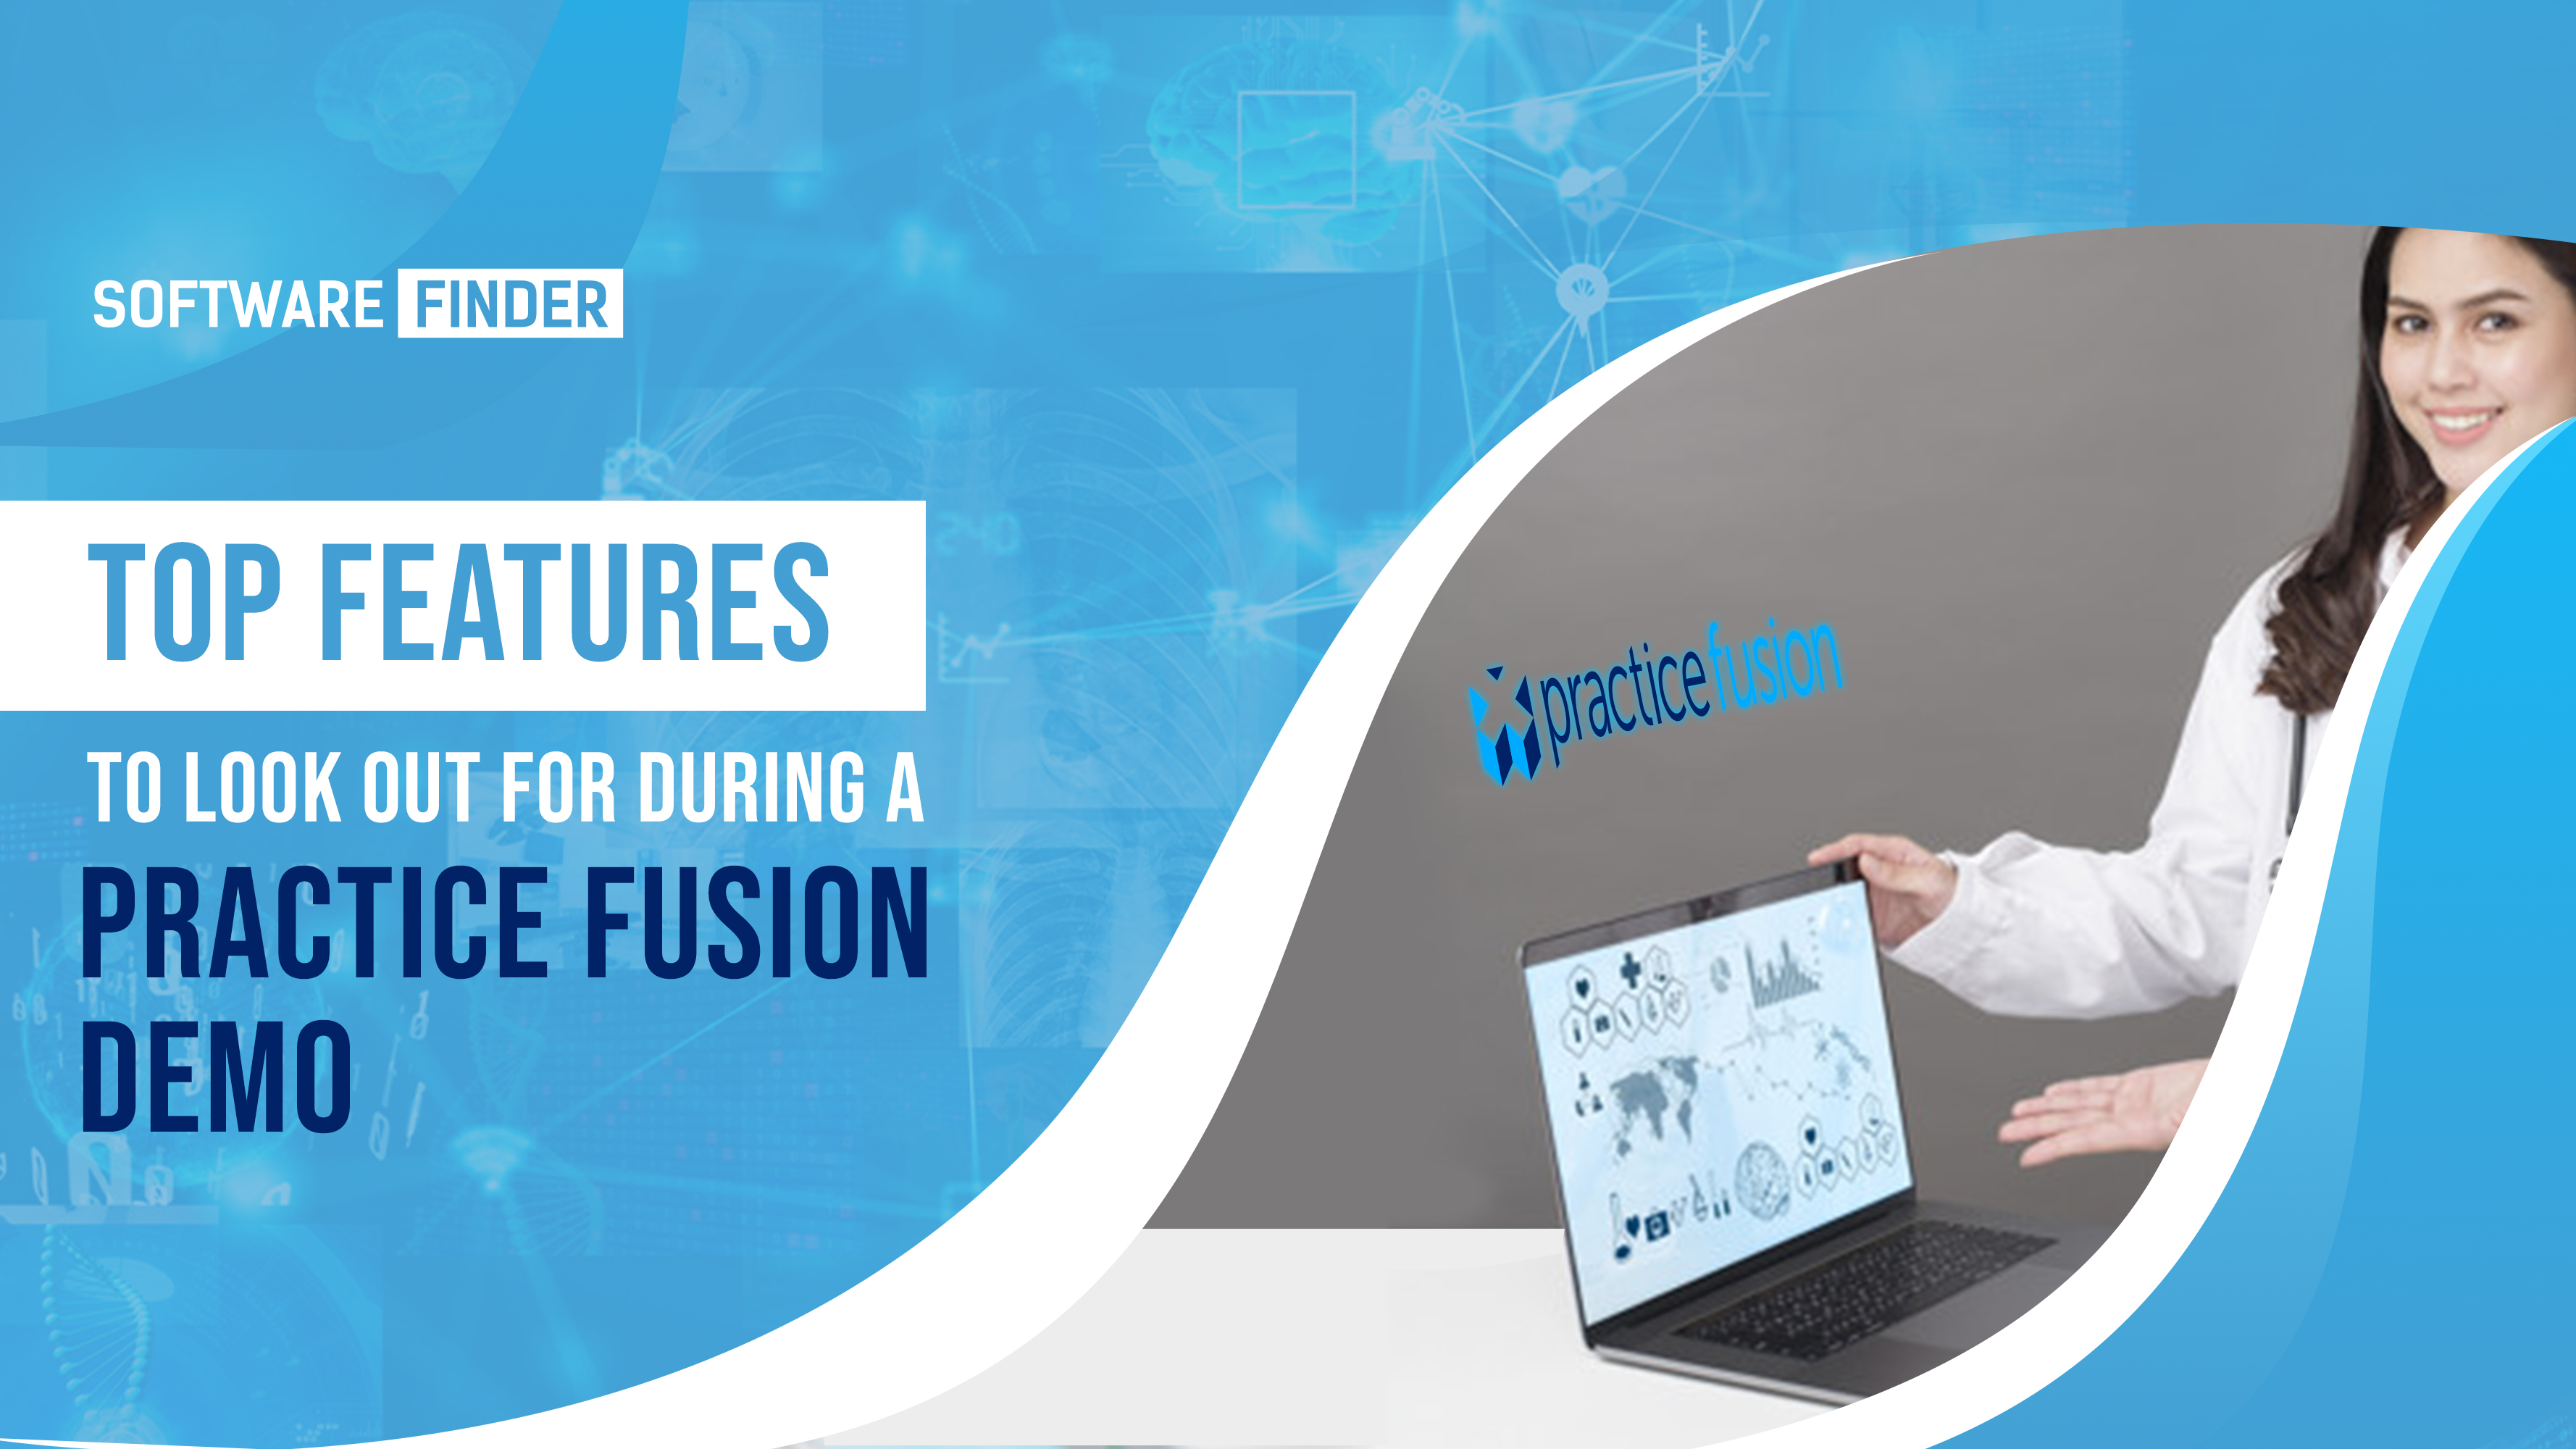 Top Features to Look Out for During a Practice Fusion Demo